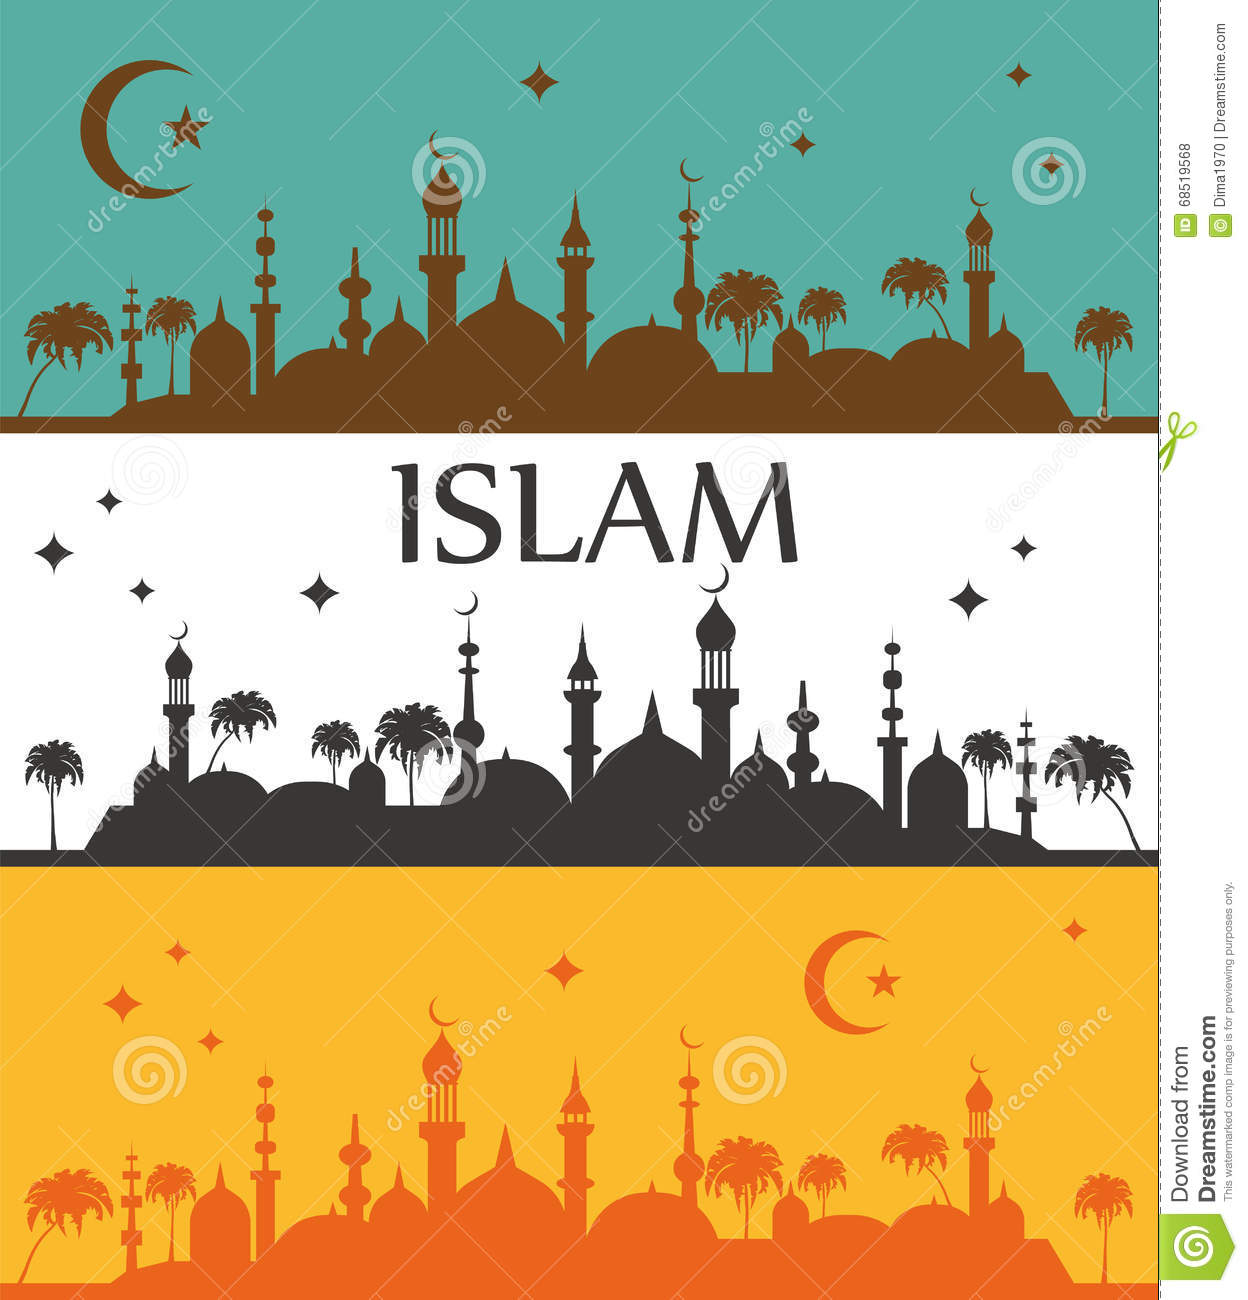 islam culture Islam, like christianity and judaism, is both a religion and culture in jordan, the cultural role islam plays in society demonstrates the ability for both christians and muslims to identify with a common culture.